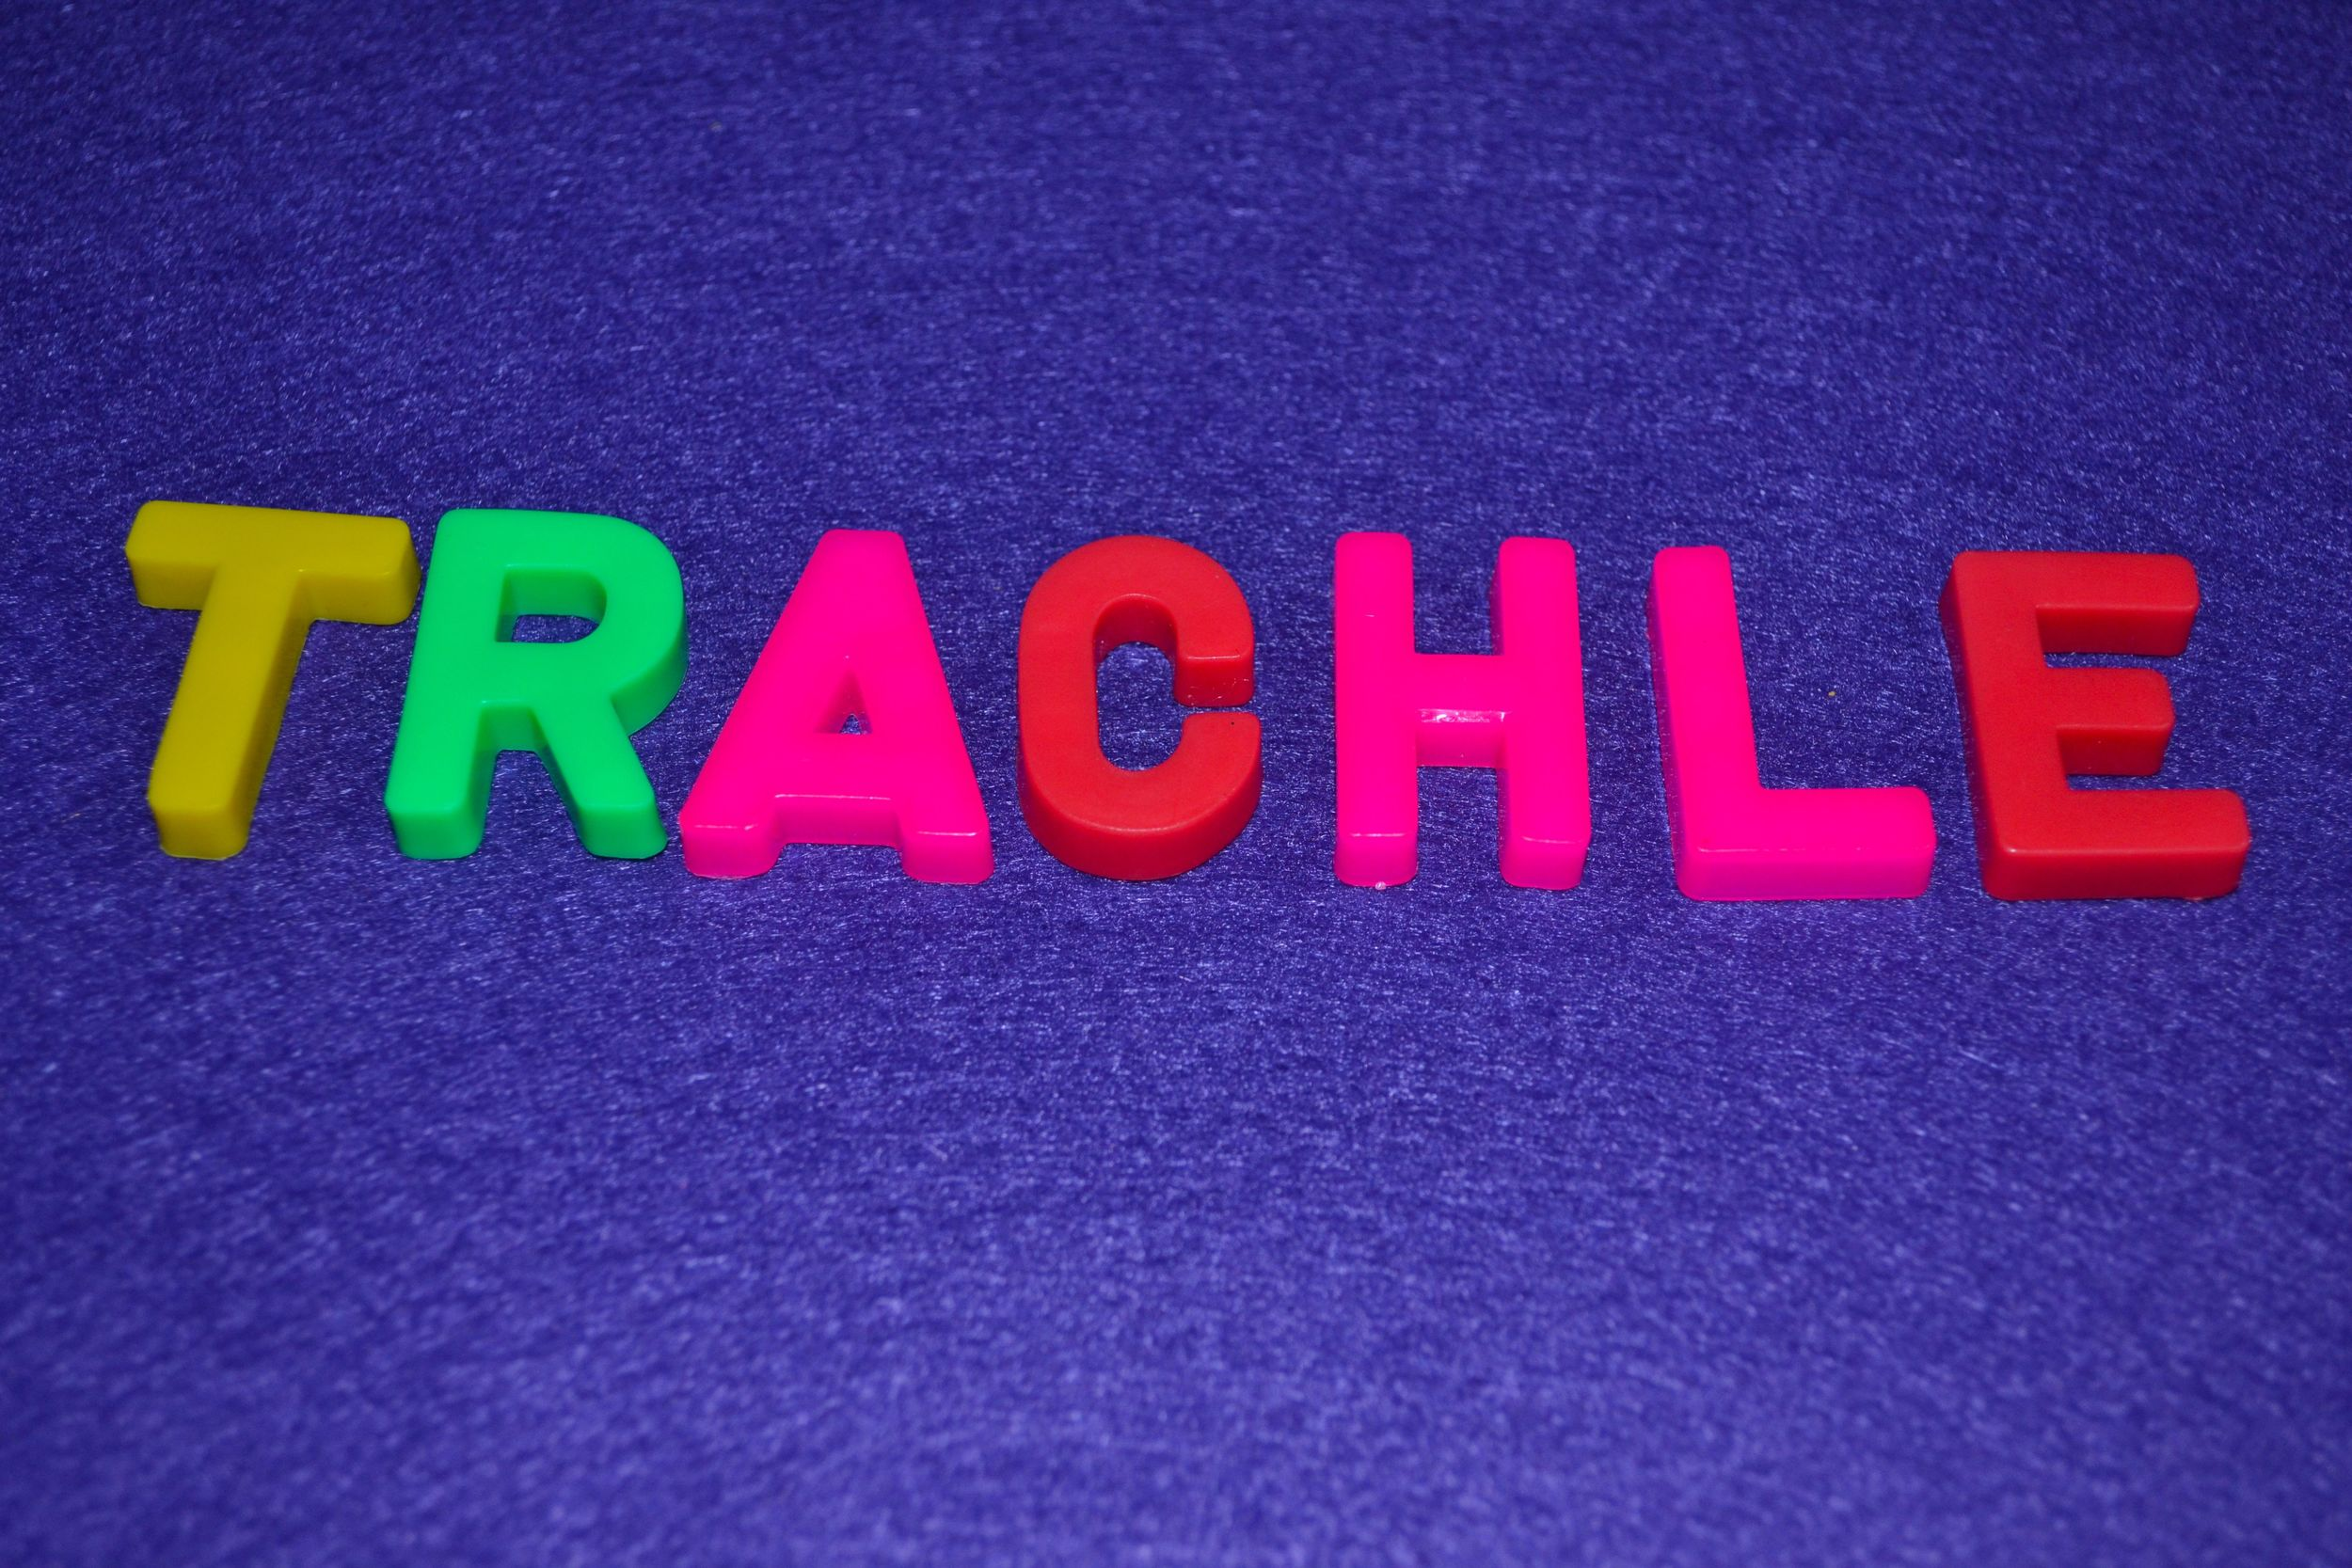 trachle